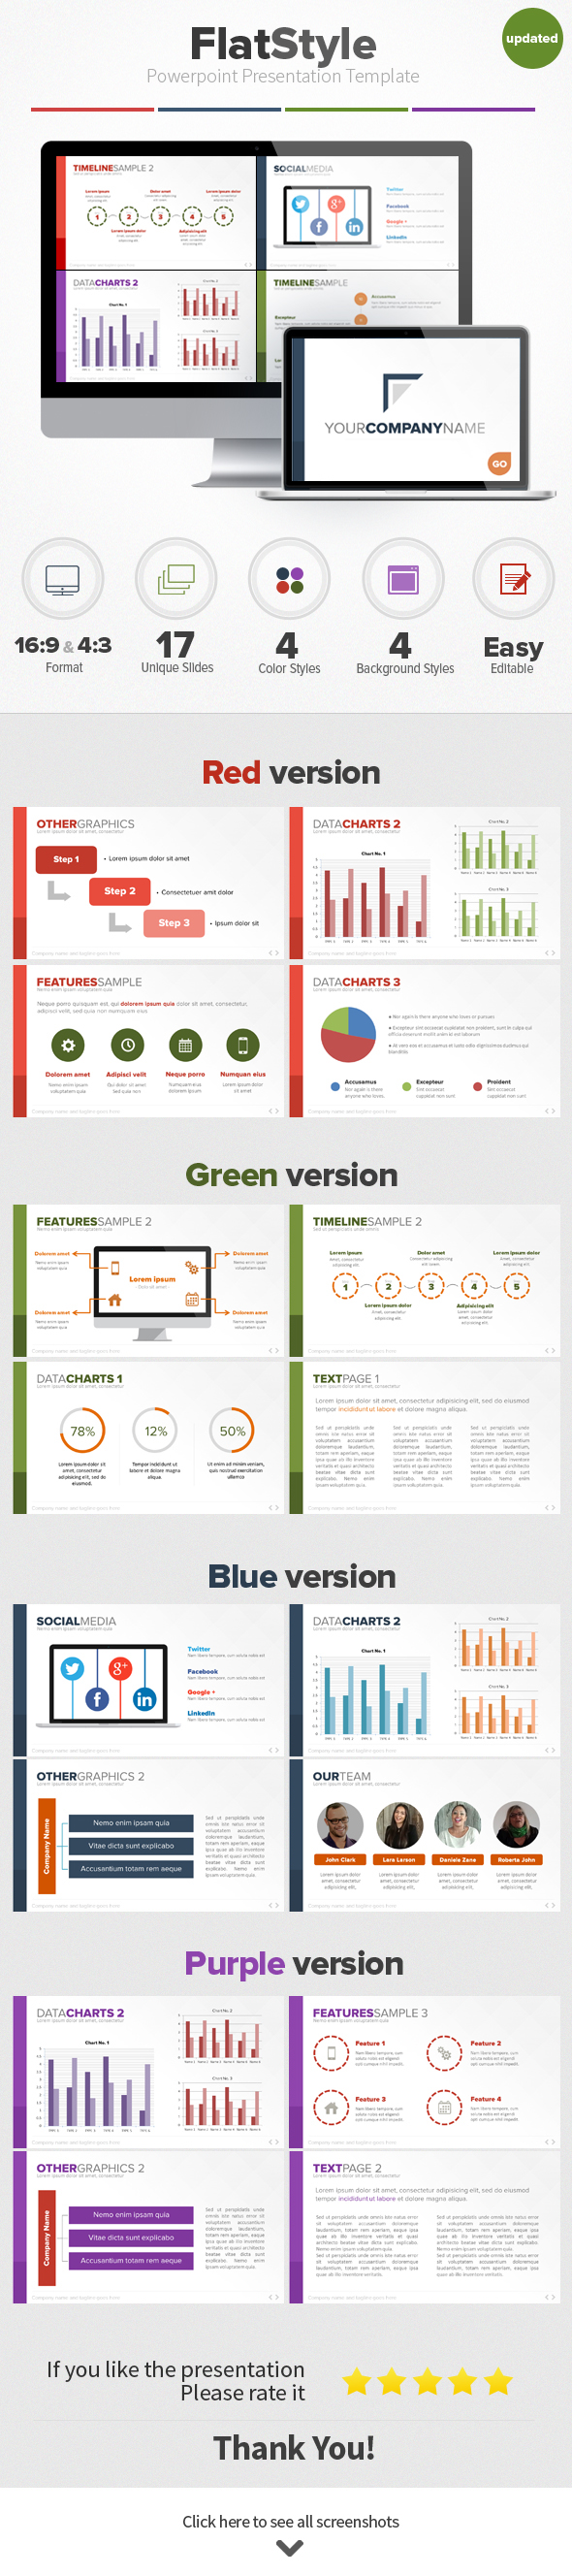 flat style powerpoint presentation template on behance, Presentation templates